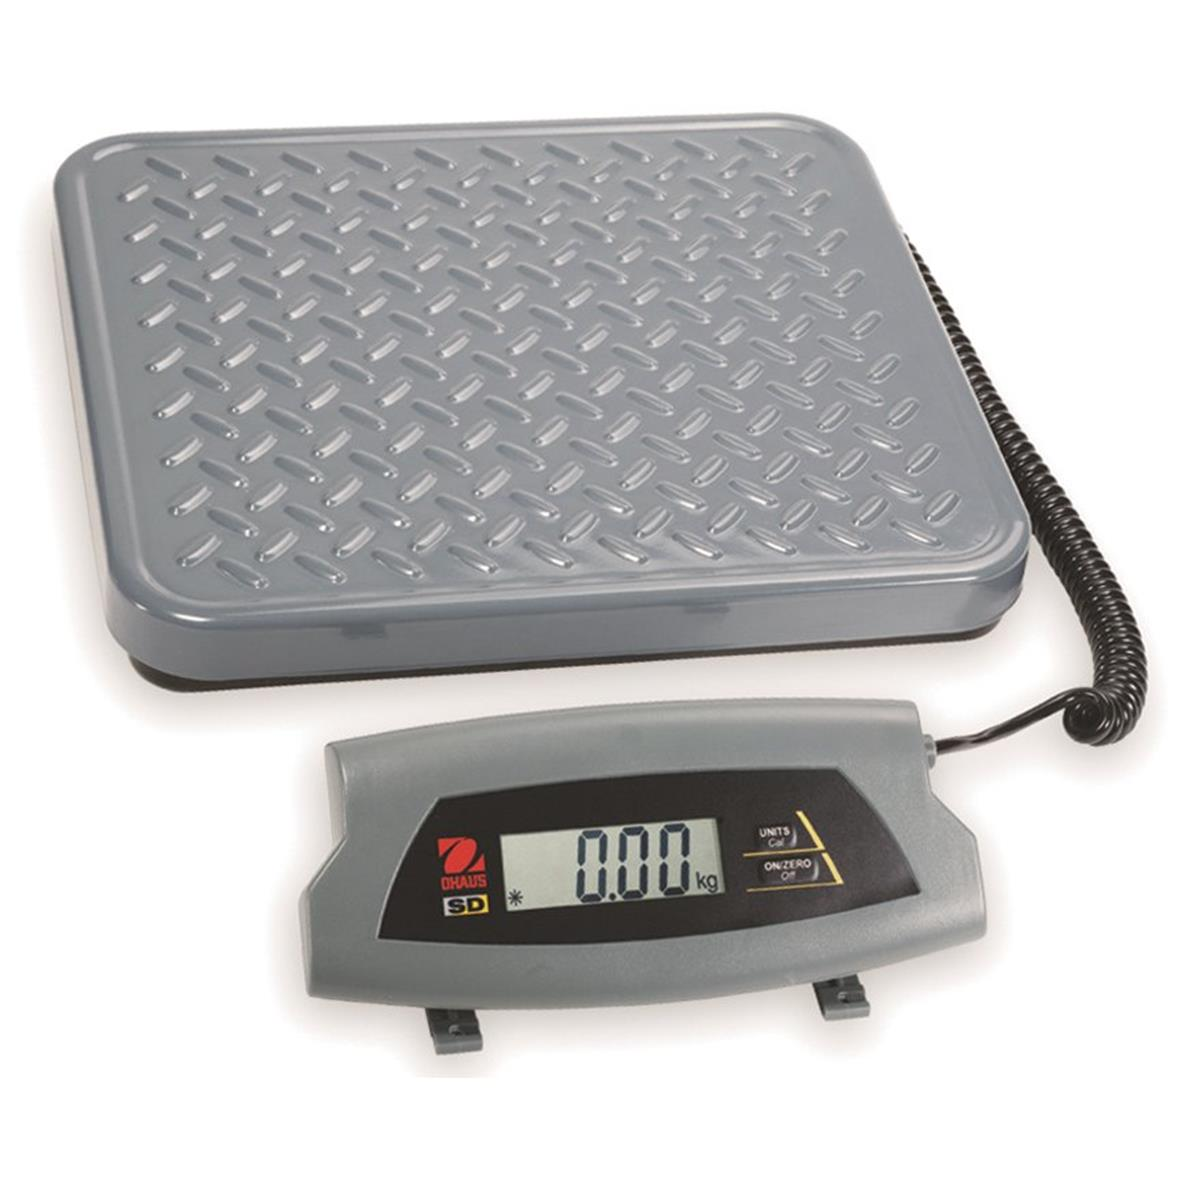 OHAUS Digital Package Scale